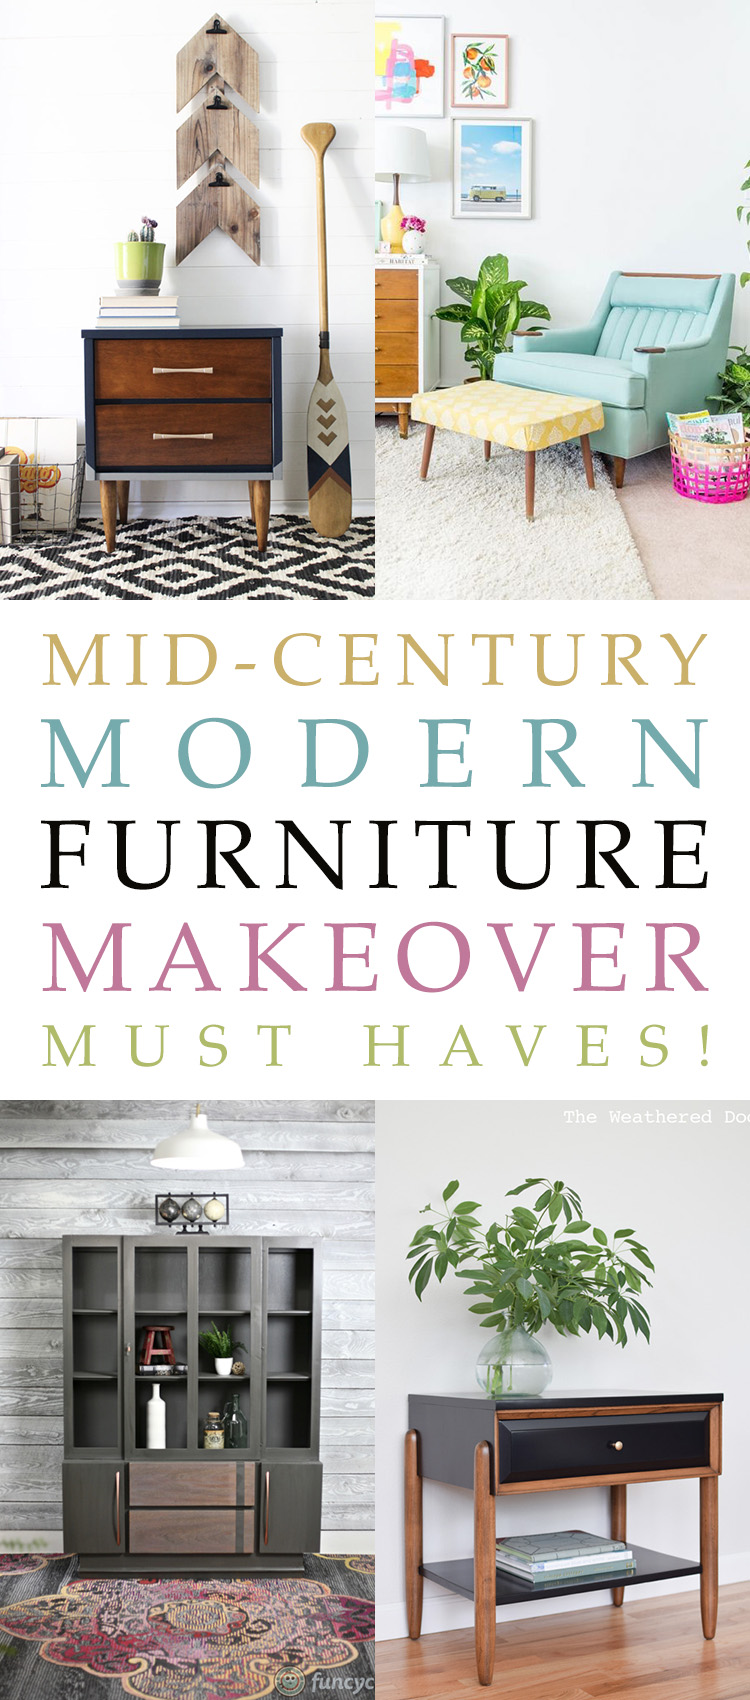 Wondrous Mid Century Modern Furniture Makeover Must Haves The Download Free Architecture Designs Scobabritishbridgeorg